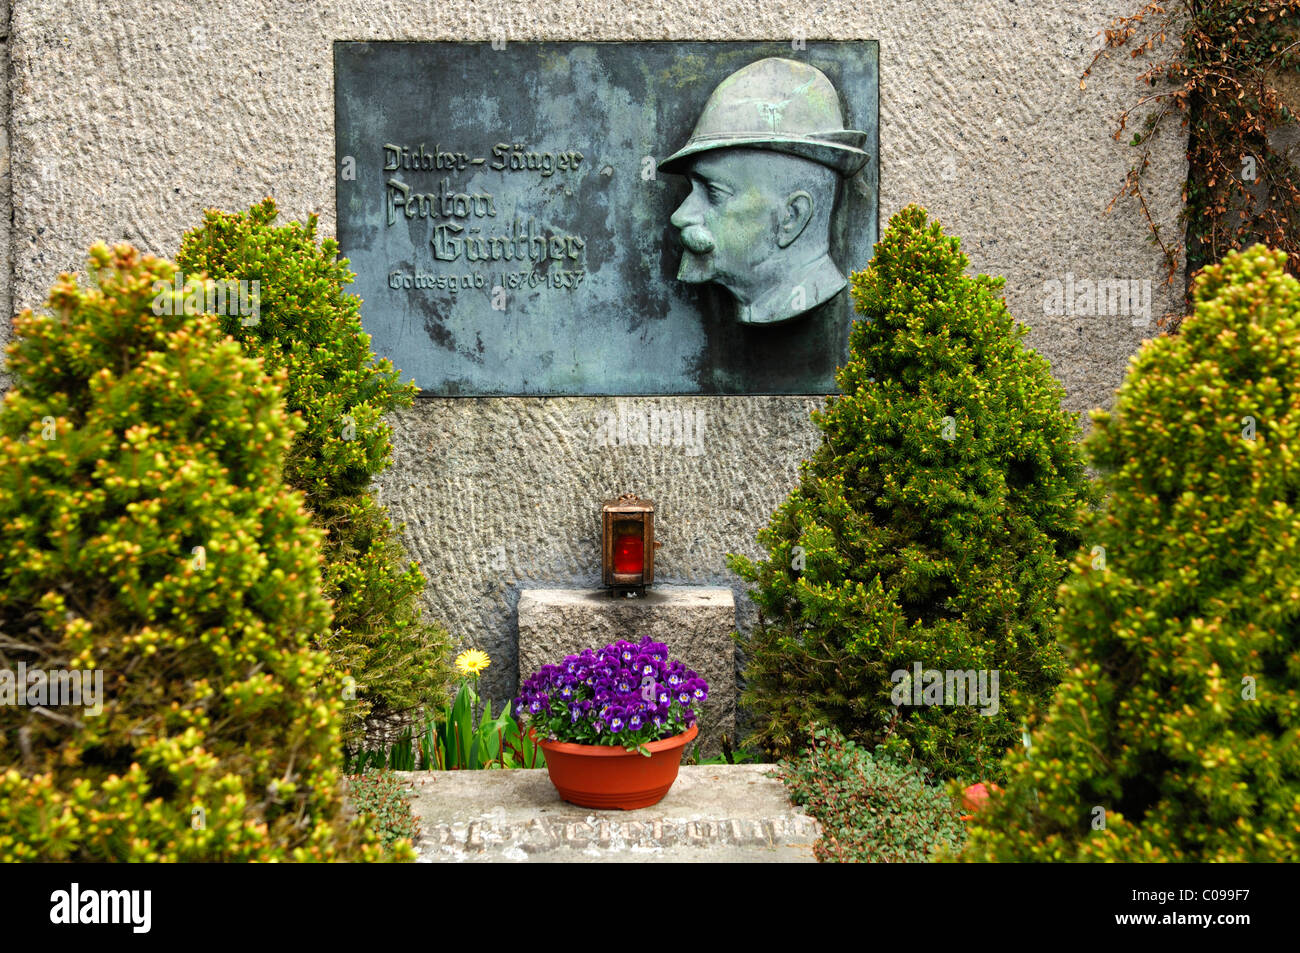 Grave site of the Erzgebirge poet and singer Anton Guenther, Gottesgab, Bozi Dar, Czech Republic, Europe - Stock Image